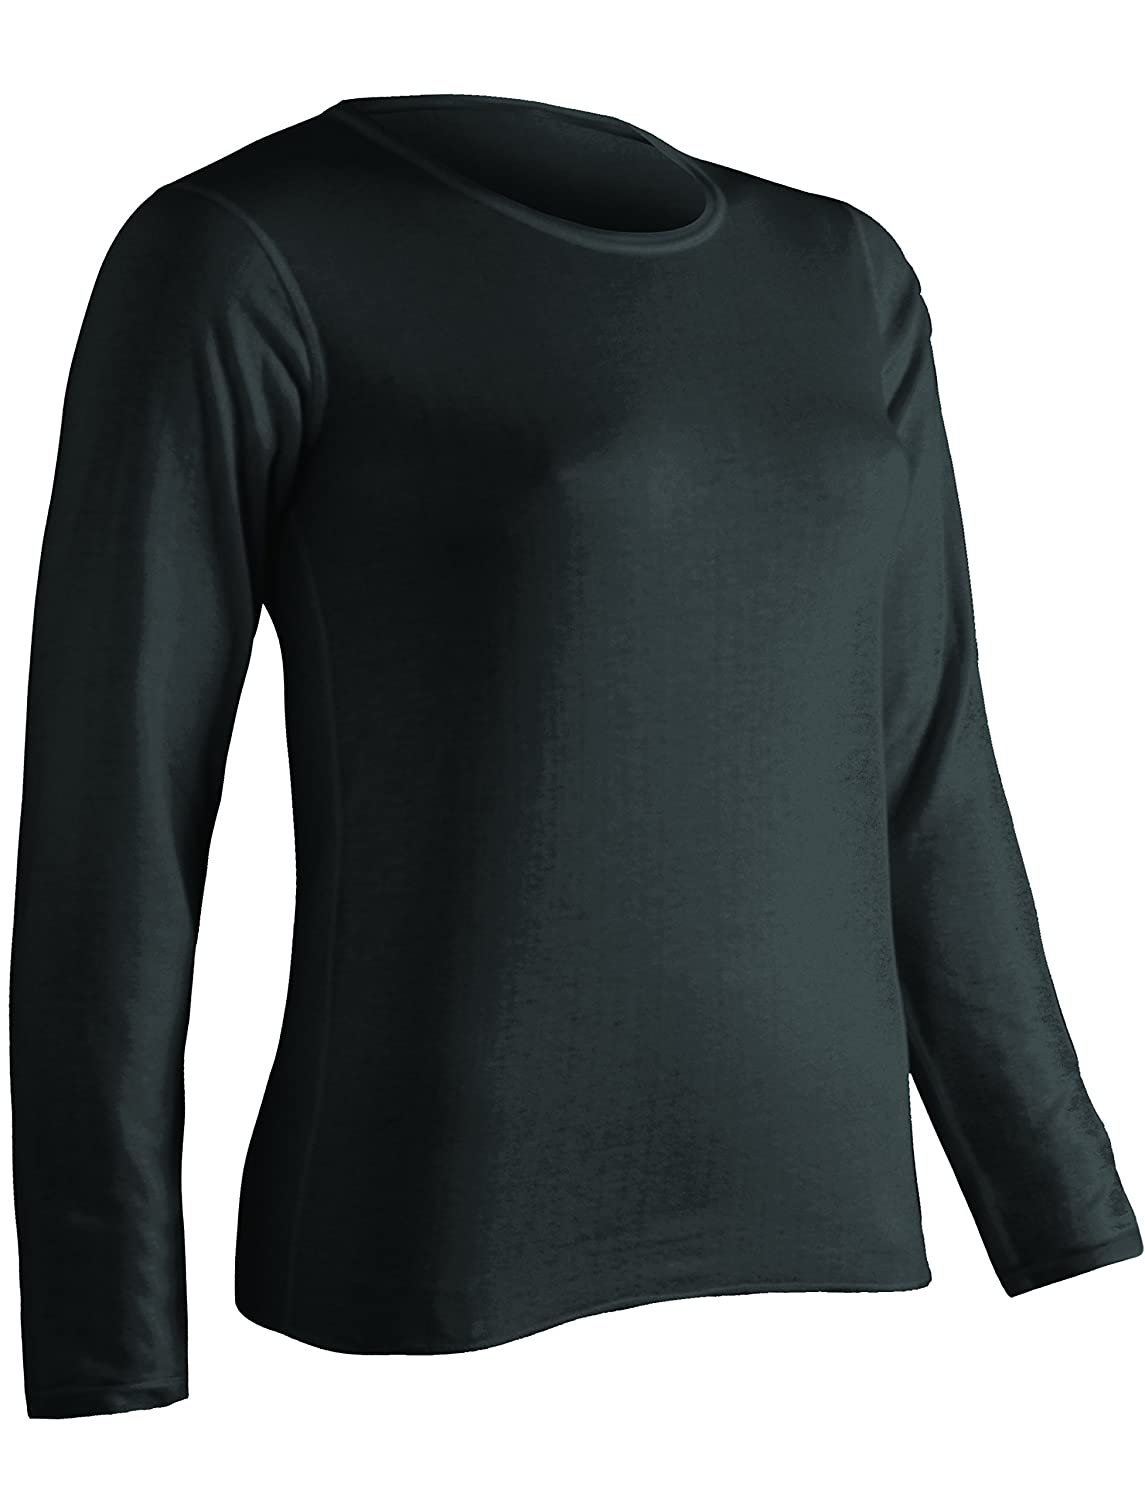 ColdPruf Women's Platinum Plus-Size - for My Size Only Dual Layer Crew-Neck Top ColdPruf Baselayer 55AP-1X-P